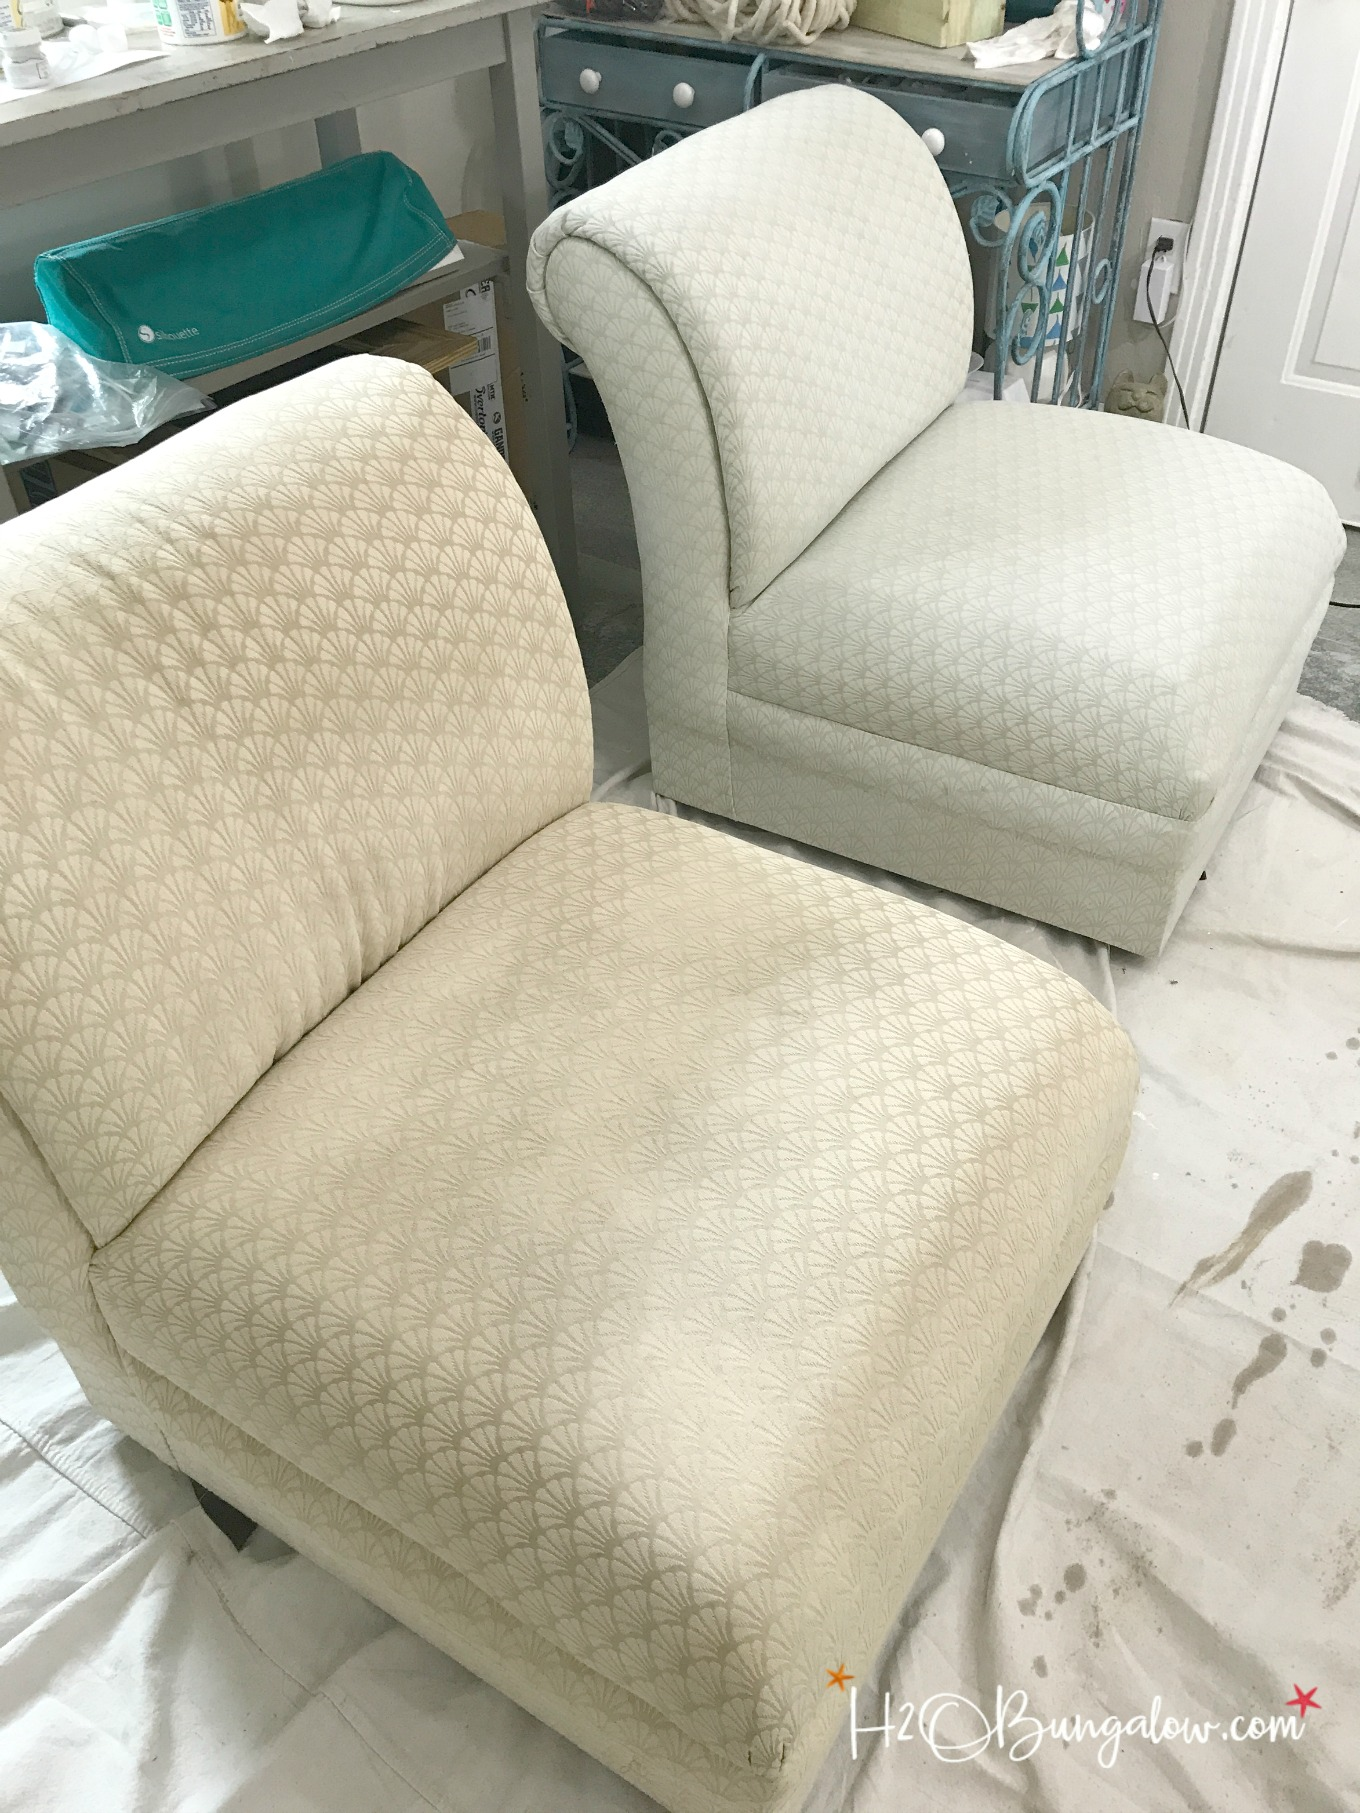 The chair on the right has one coat of paint on it. I only needed one coat of paint on my fabric chairs. & Painted Upholstered Chair Makeover Tutorial - H20Bungalow